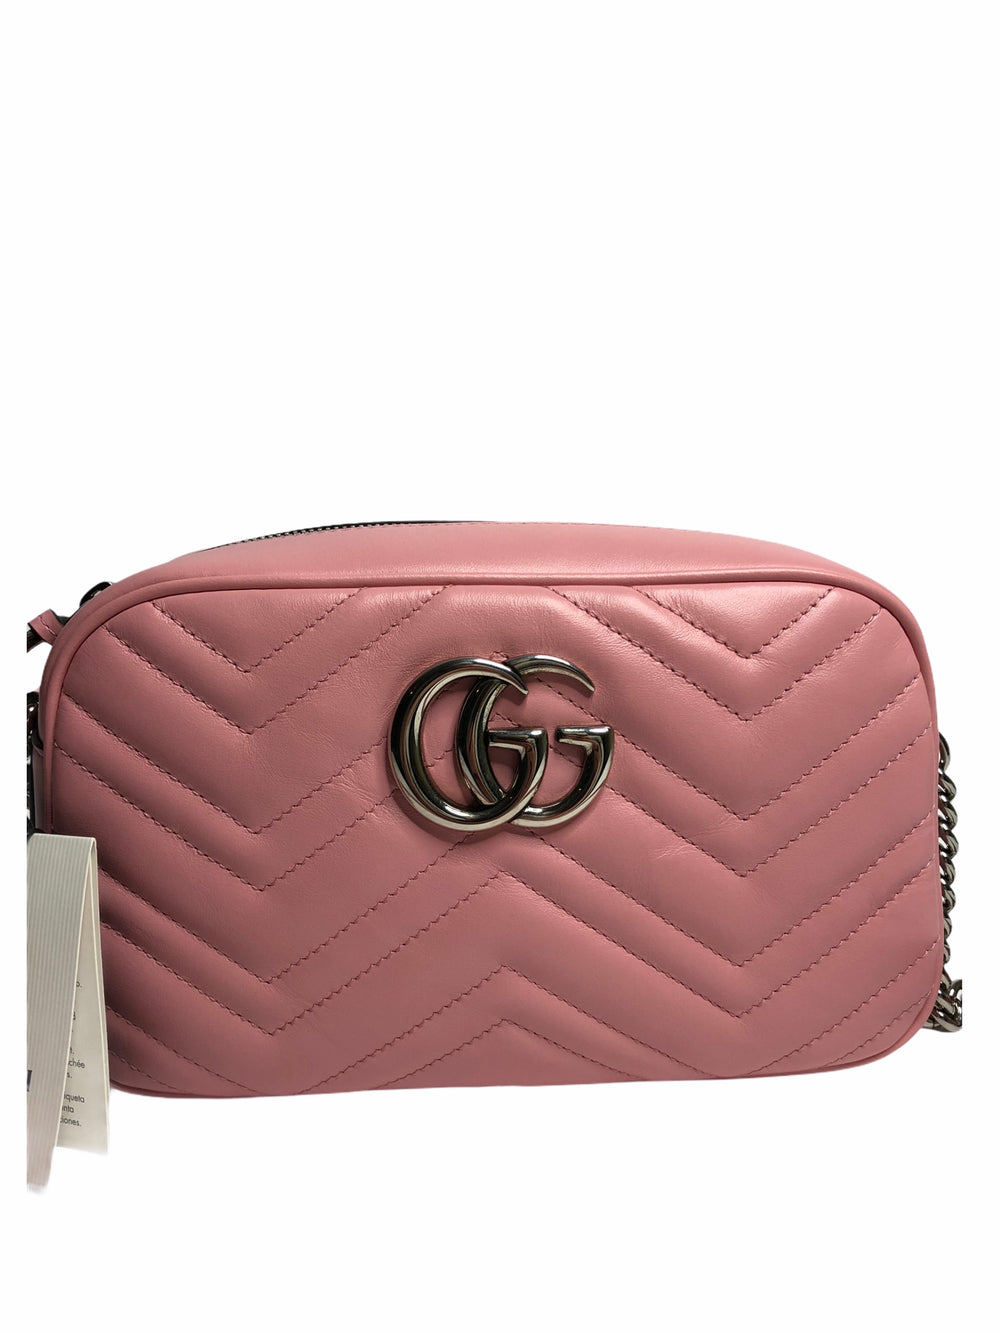 Gucci Bubble Gum Pink Leather Marmont - As Seen on Instagram 4/11/2020